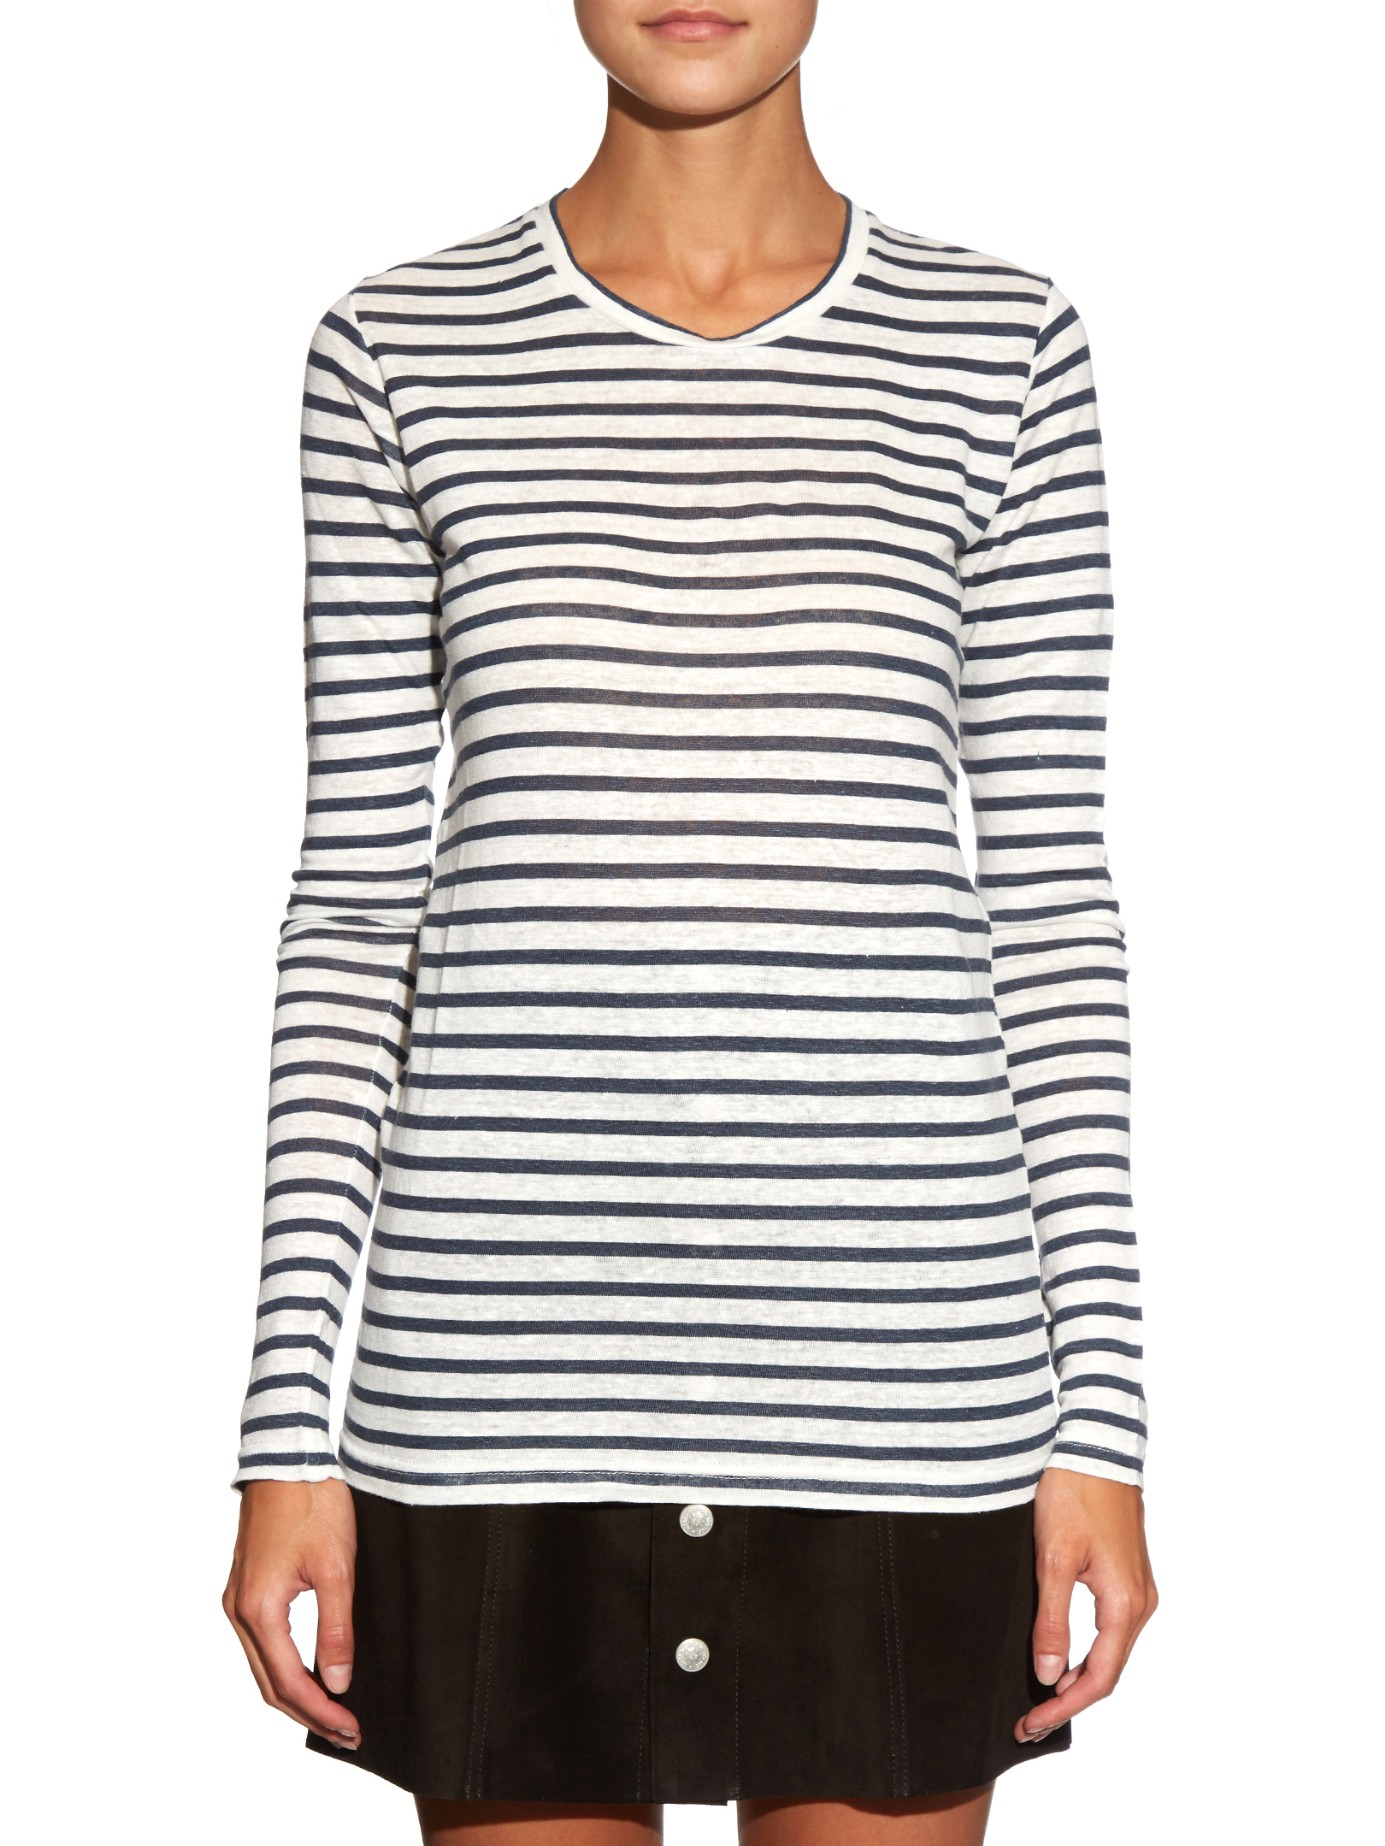 Cheap Order Karon long-sleeved striped linen-blend T-shirt Isabel Marant Authentic Cheap Price Outlet Recommend Professional Online Cheapest Price Cheap Online Ow0ss3d